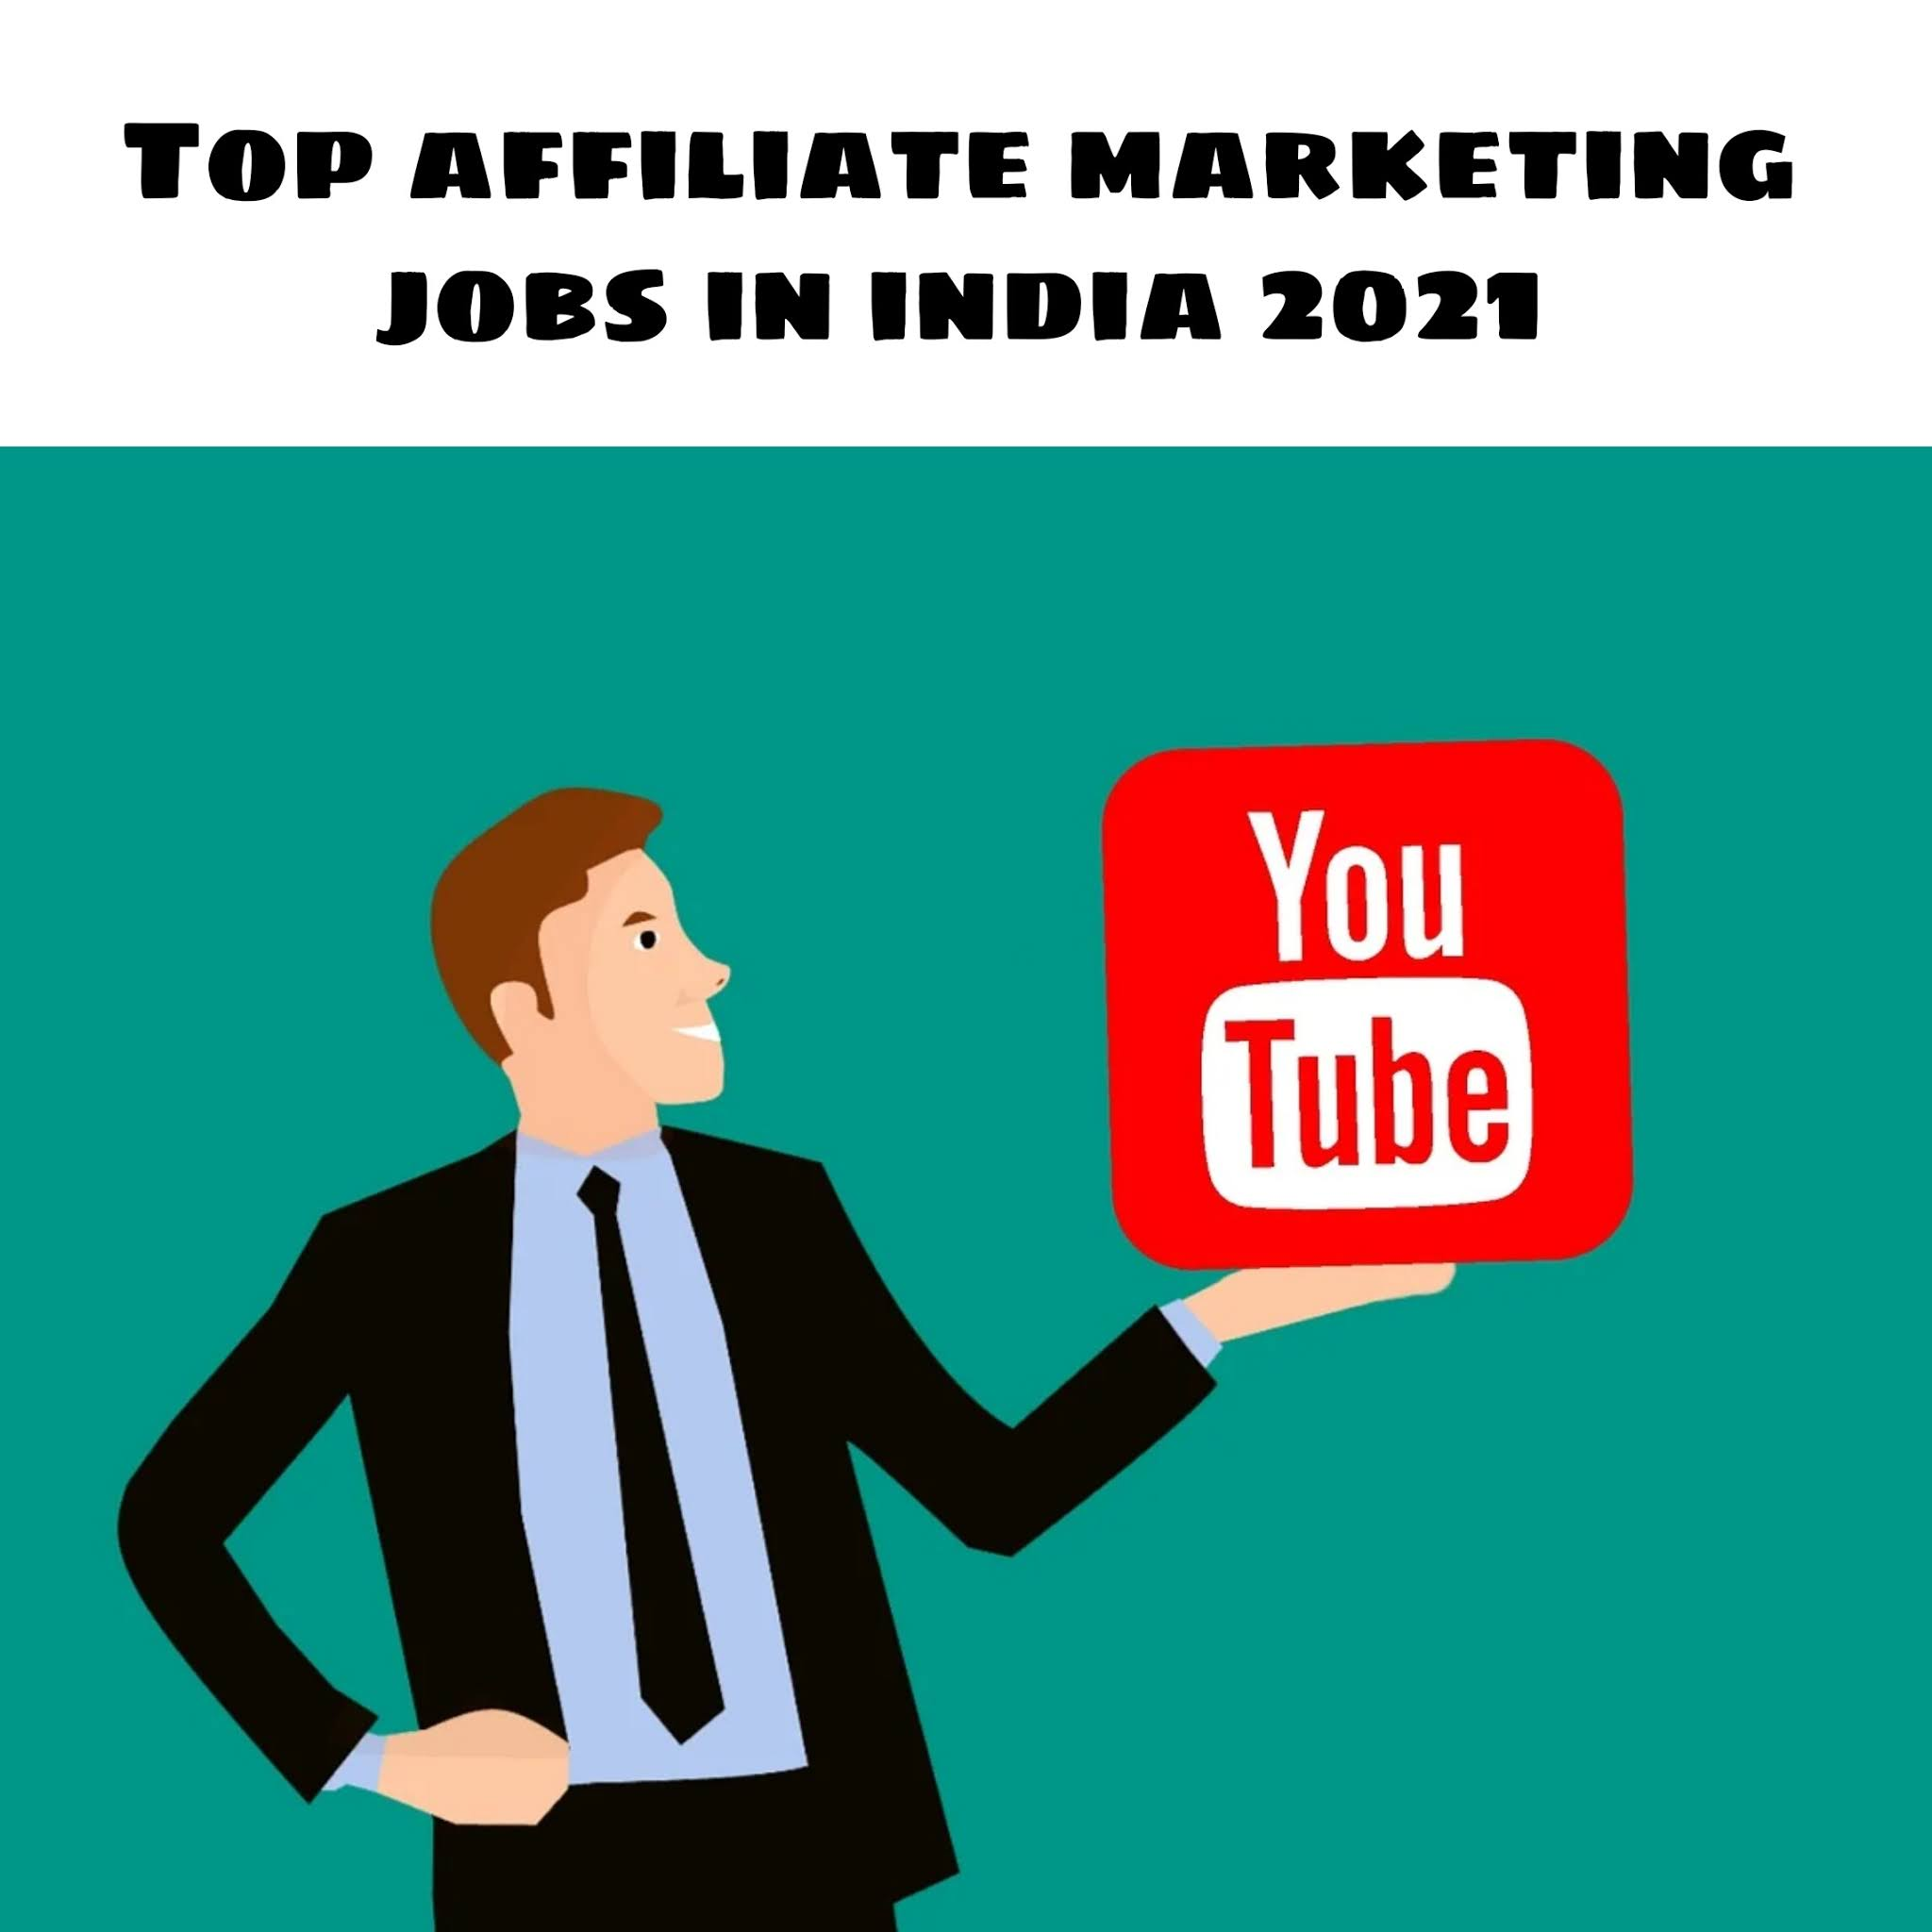 Top Affiliate Marketing jobs in India